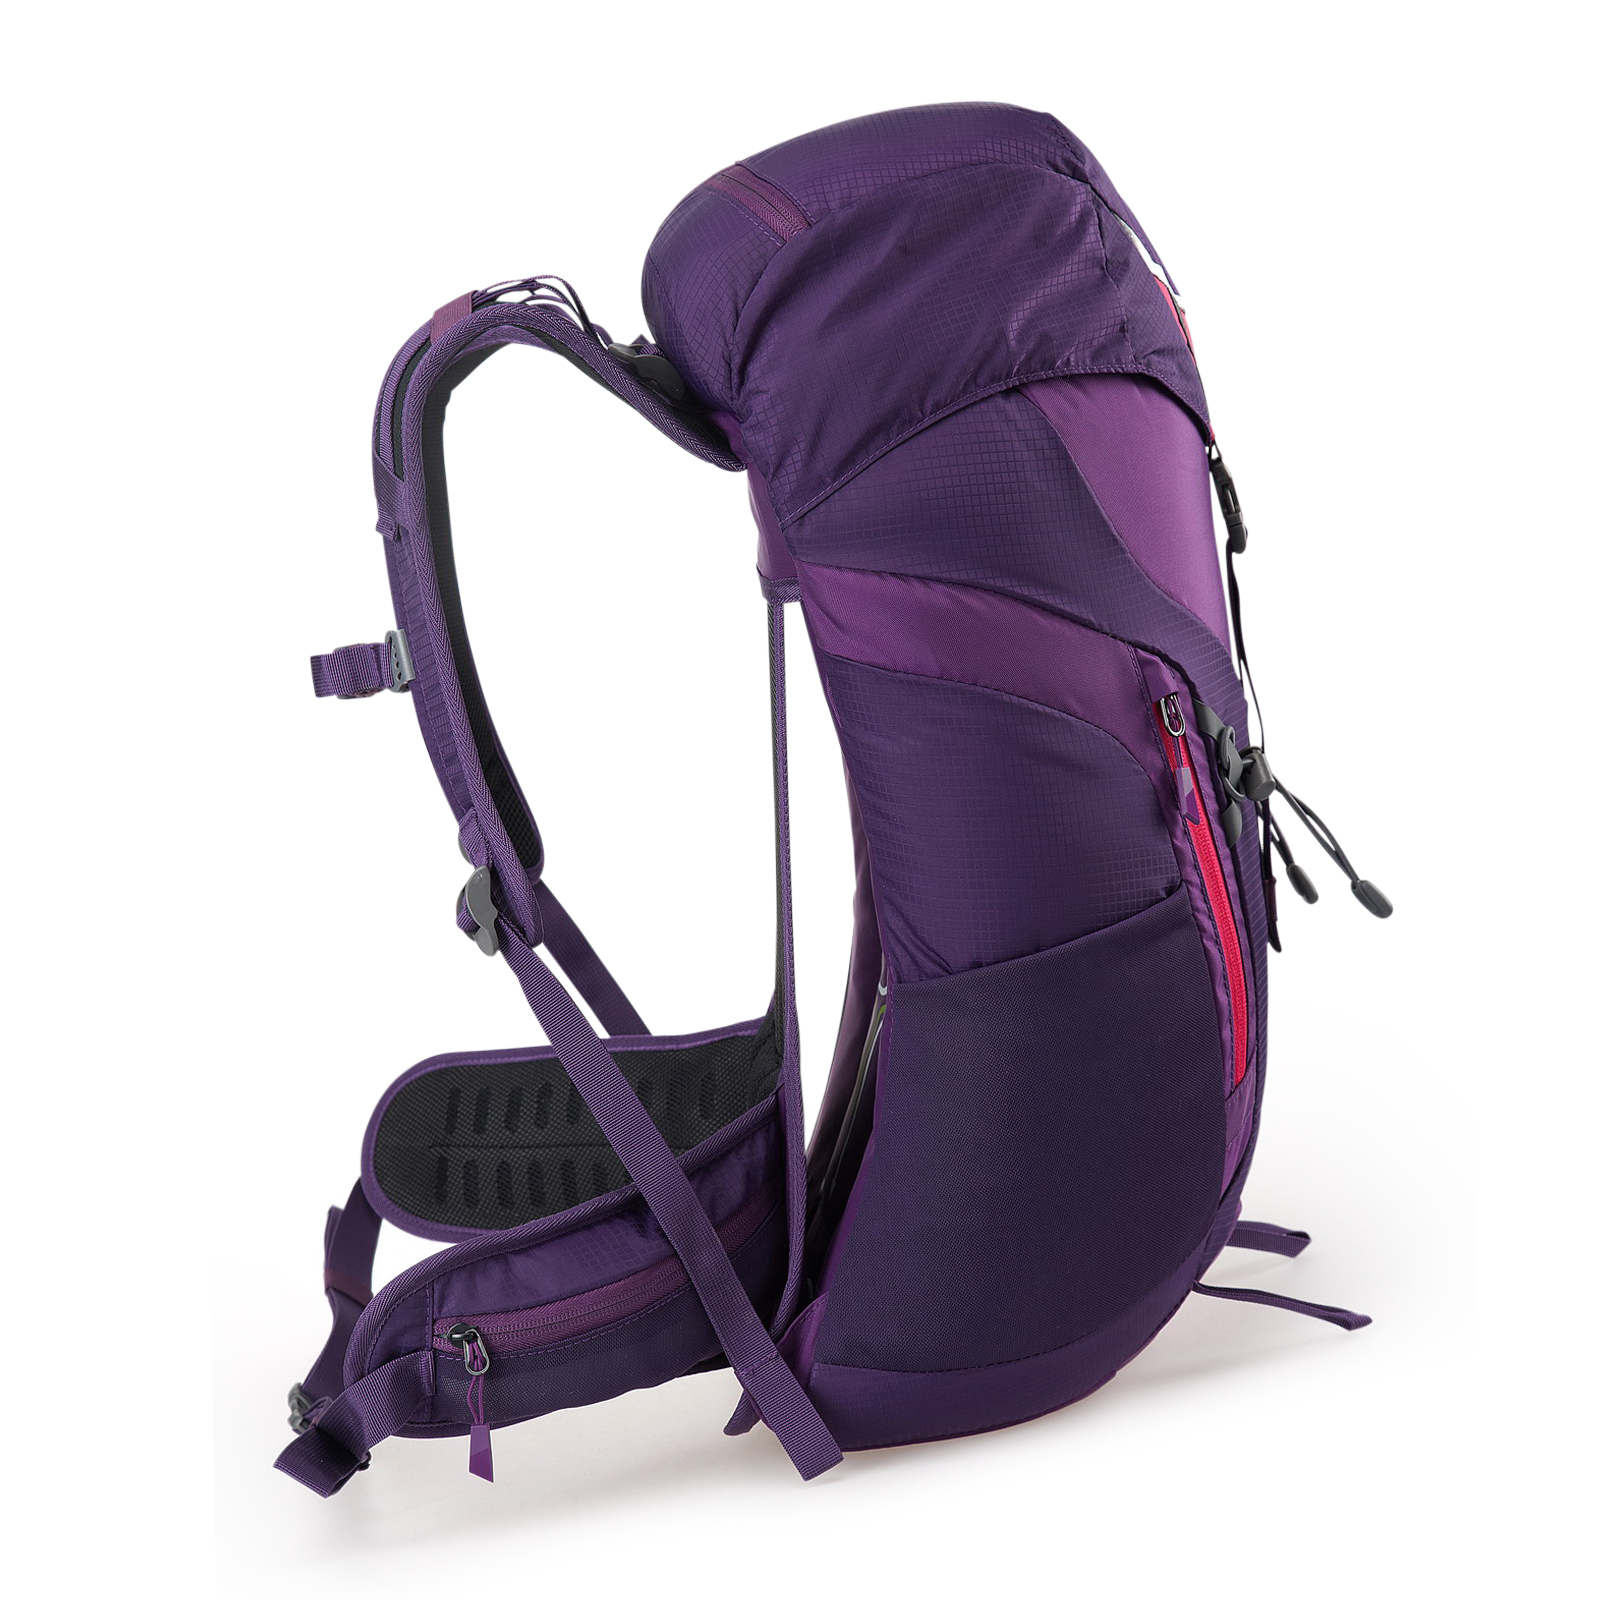 terra peak airflux 22 rucksack wanderrucksack trekking. Black Bedroom Furniture Sets. Home Design Ideas